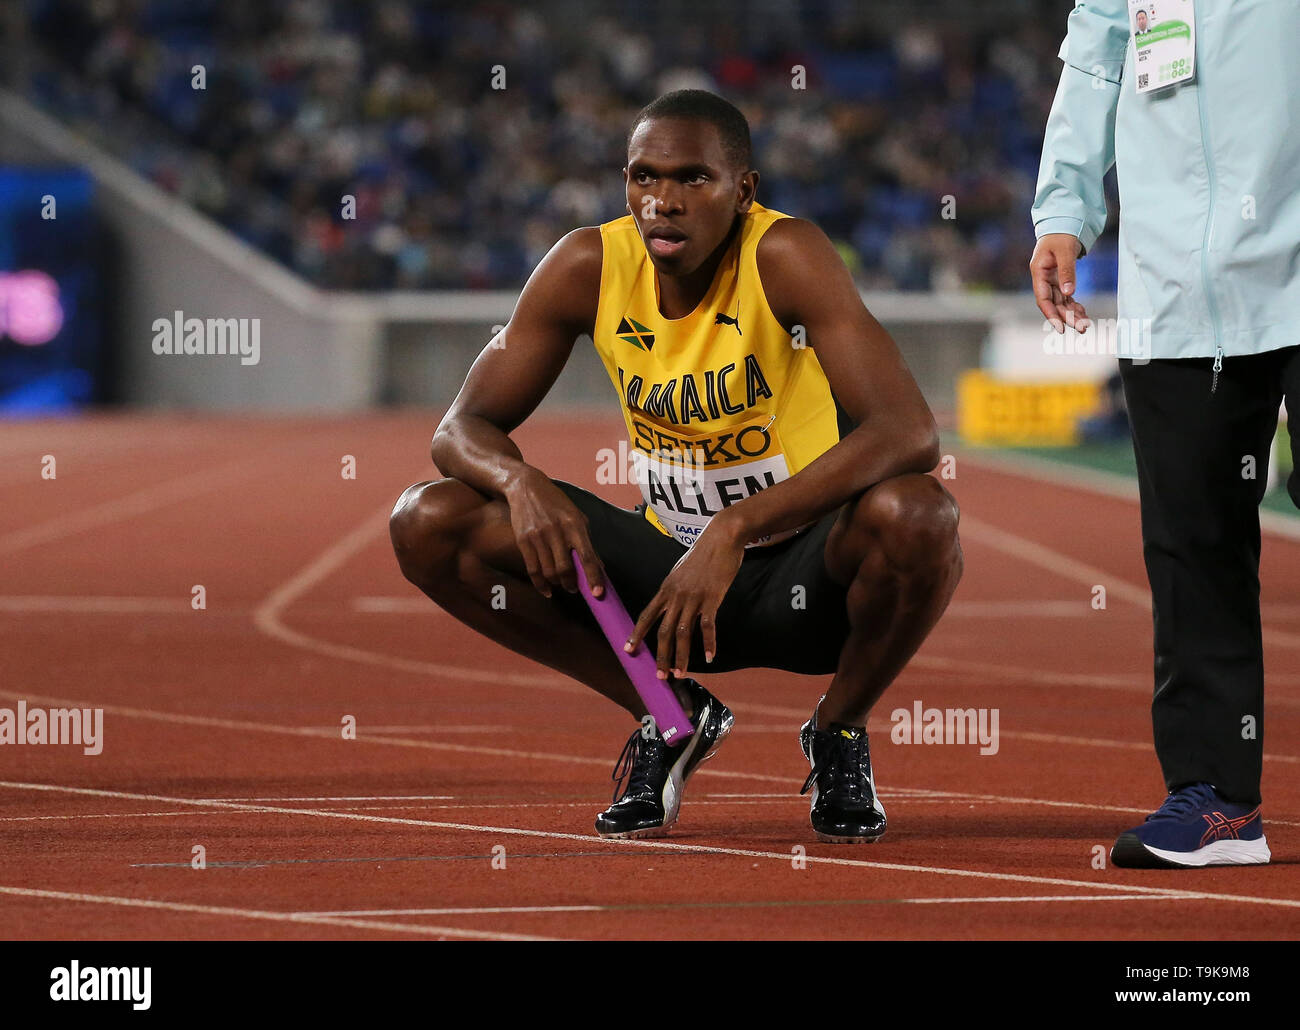 YOKOHAMA, JAPAN - MAY 10: Nathon Allen of Jamaica during Day 1 of the 2019 IAAF World Relay Championships at the Nissan Stadium on Saturday May 11, 2019 in Yokohama, Japan. (Photo by Roger Sedres for the IAAF) - Stock Image